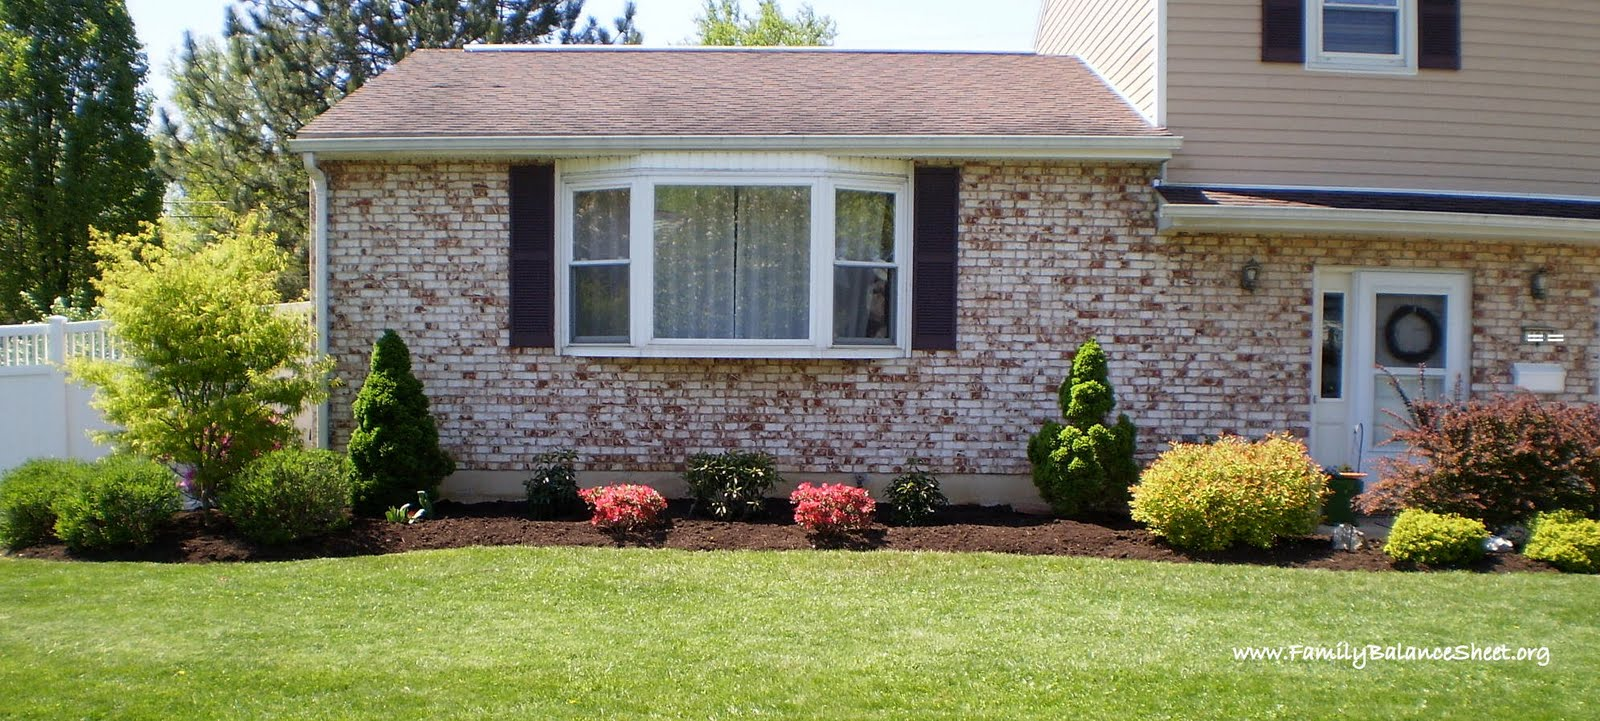 15 tips to help you design your front yard save money too for Front garden design